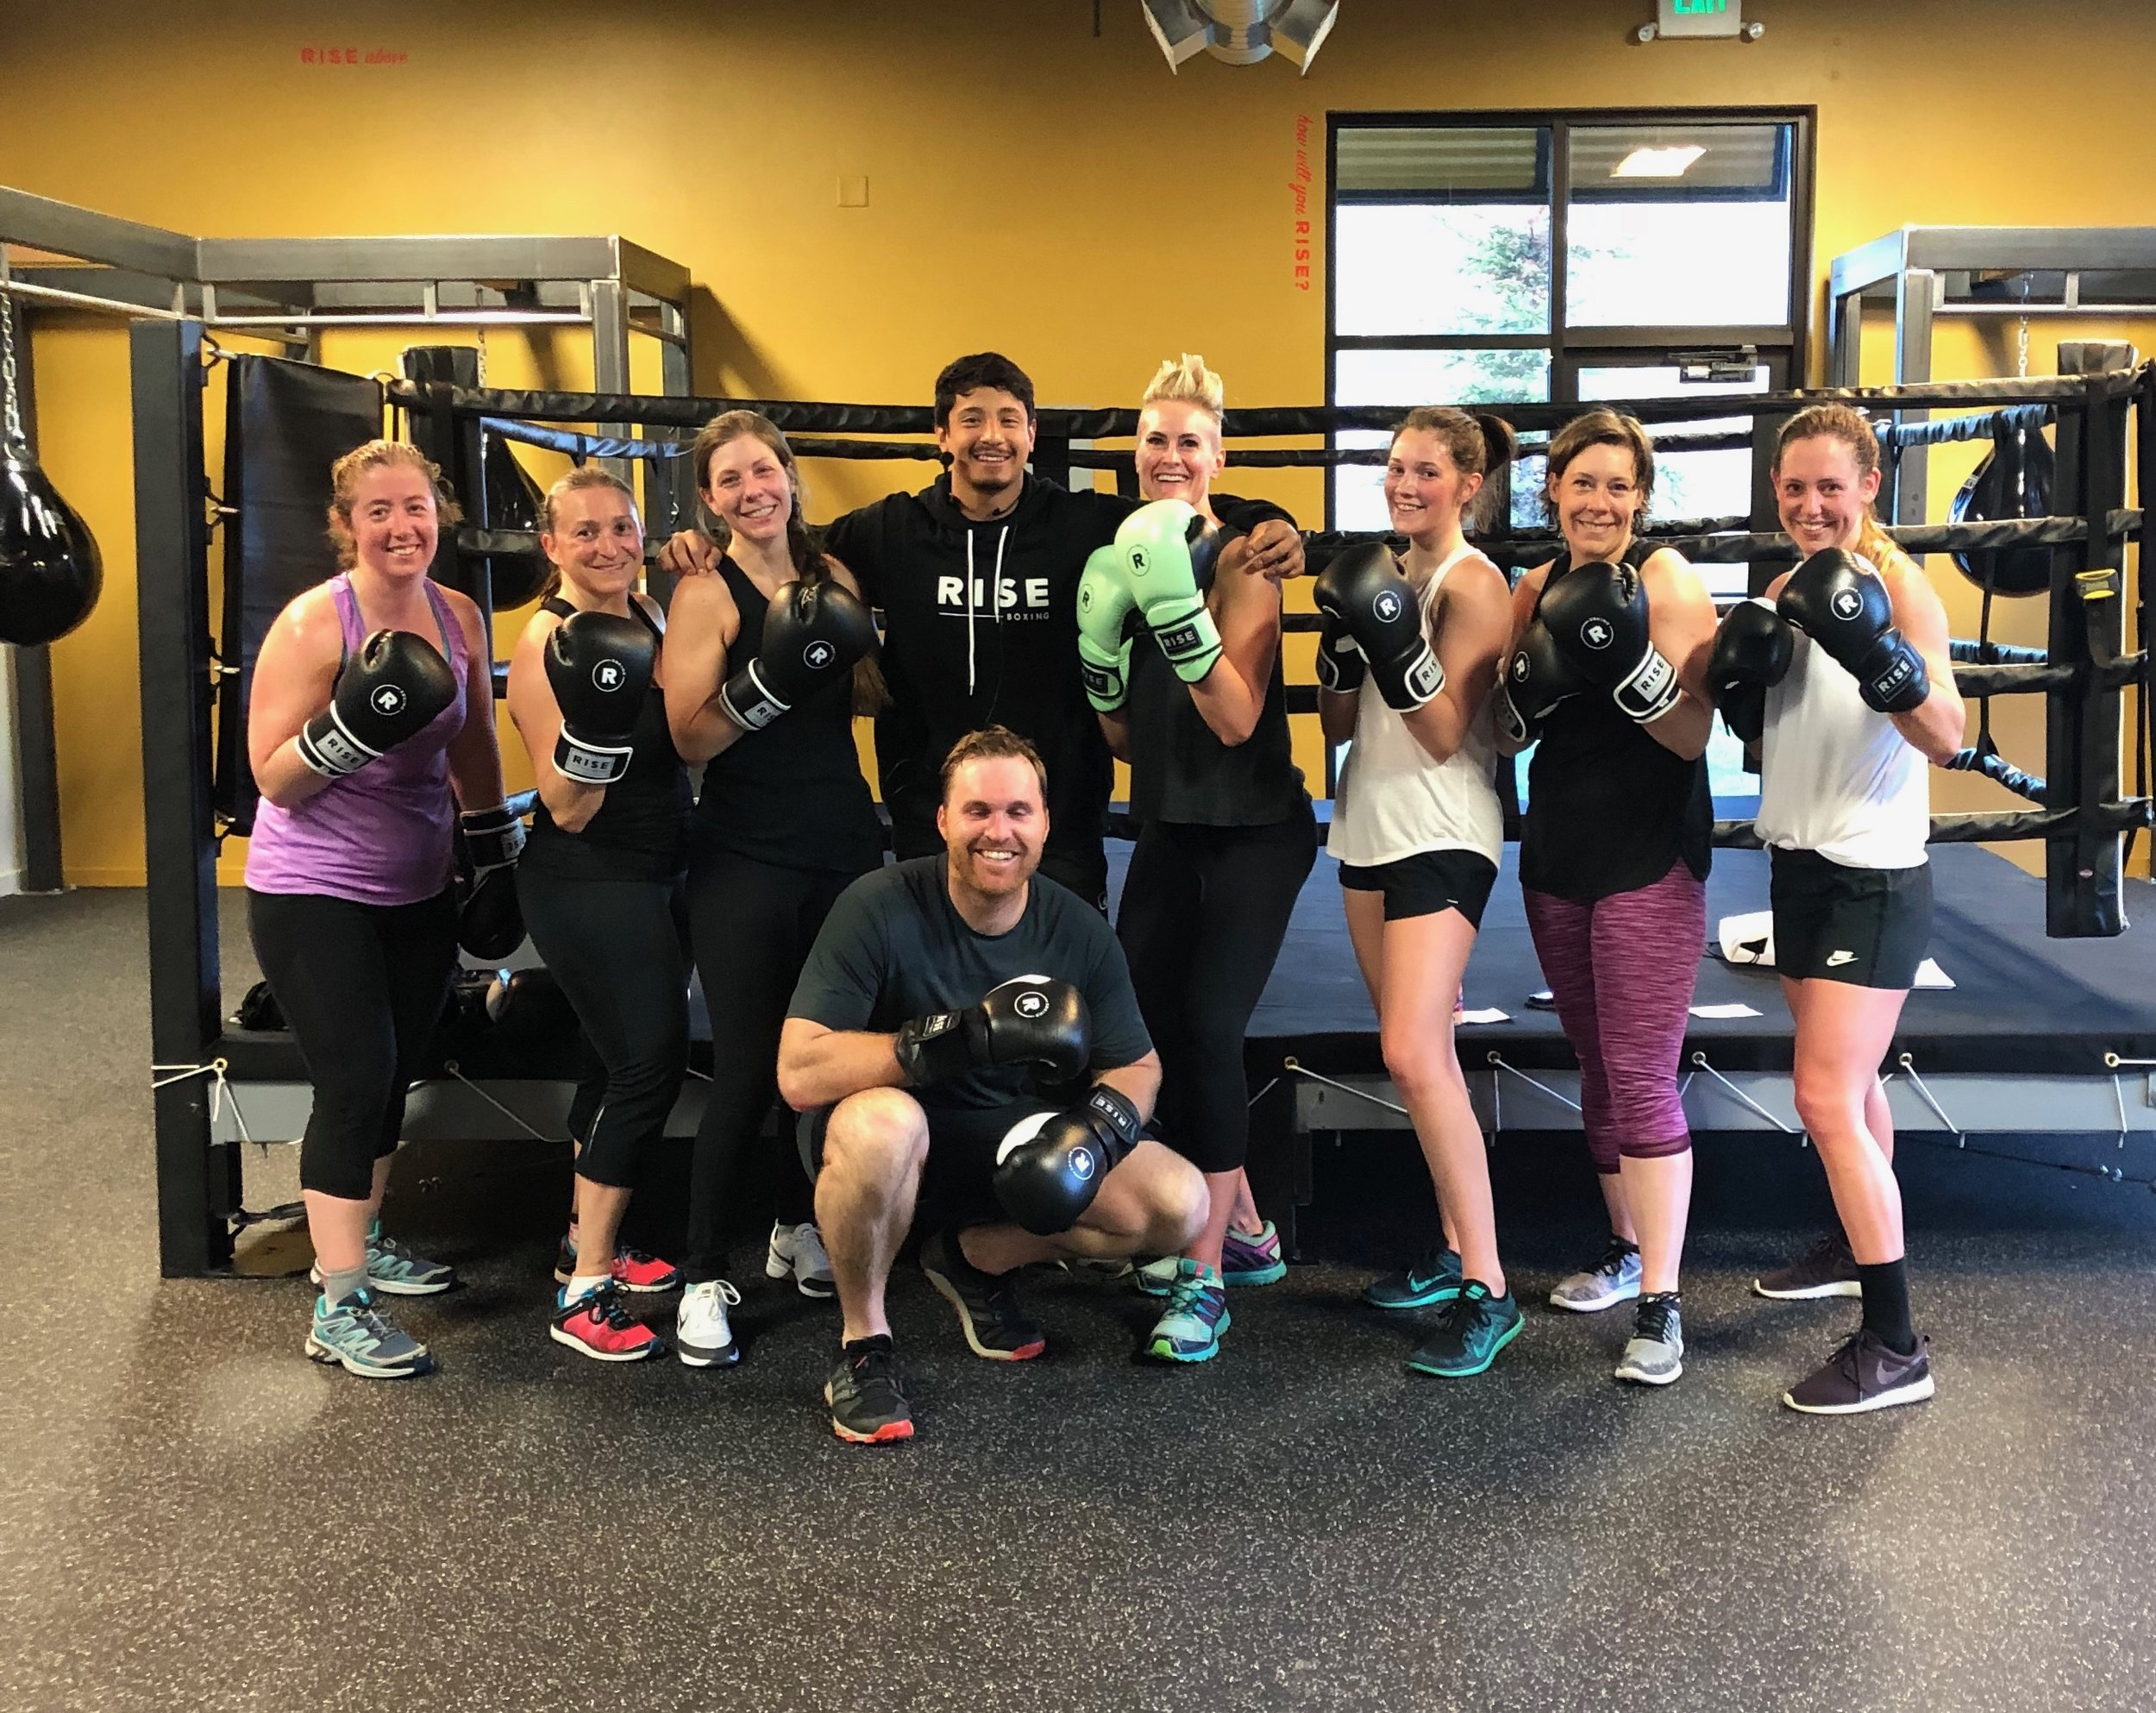 Private Group Classes - From wedding parties to corporate team-building events, to even private family classes, RISE boxing is happy to offer Private Group Classes.  Whatever your event, we can bring the energy.  Inquire with our Front Desk or email us at info@riseboxing.com for all our Private Group packages.